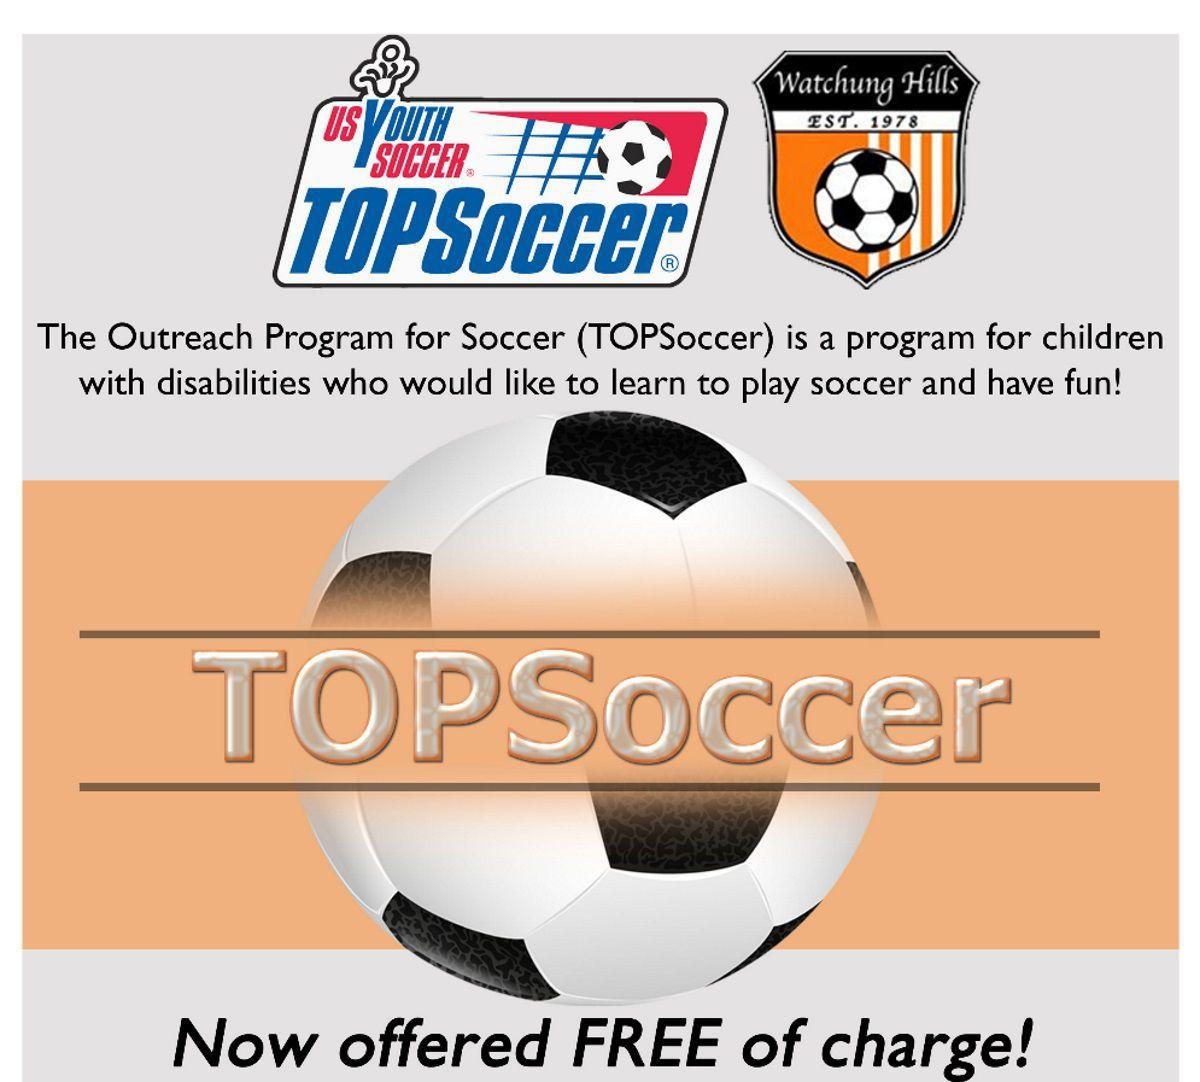 'TOPSoccer' registration opens in the Watchung Hills